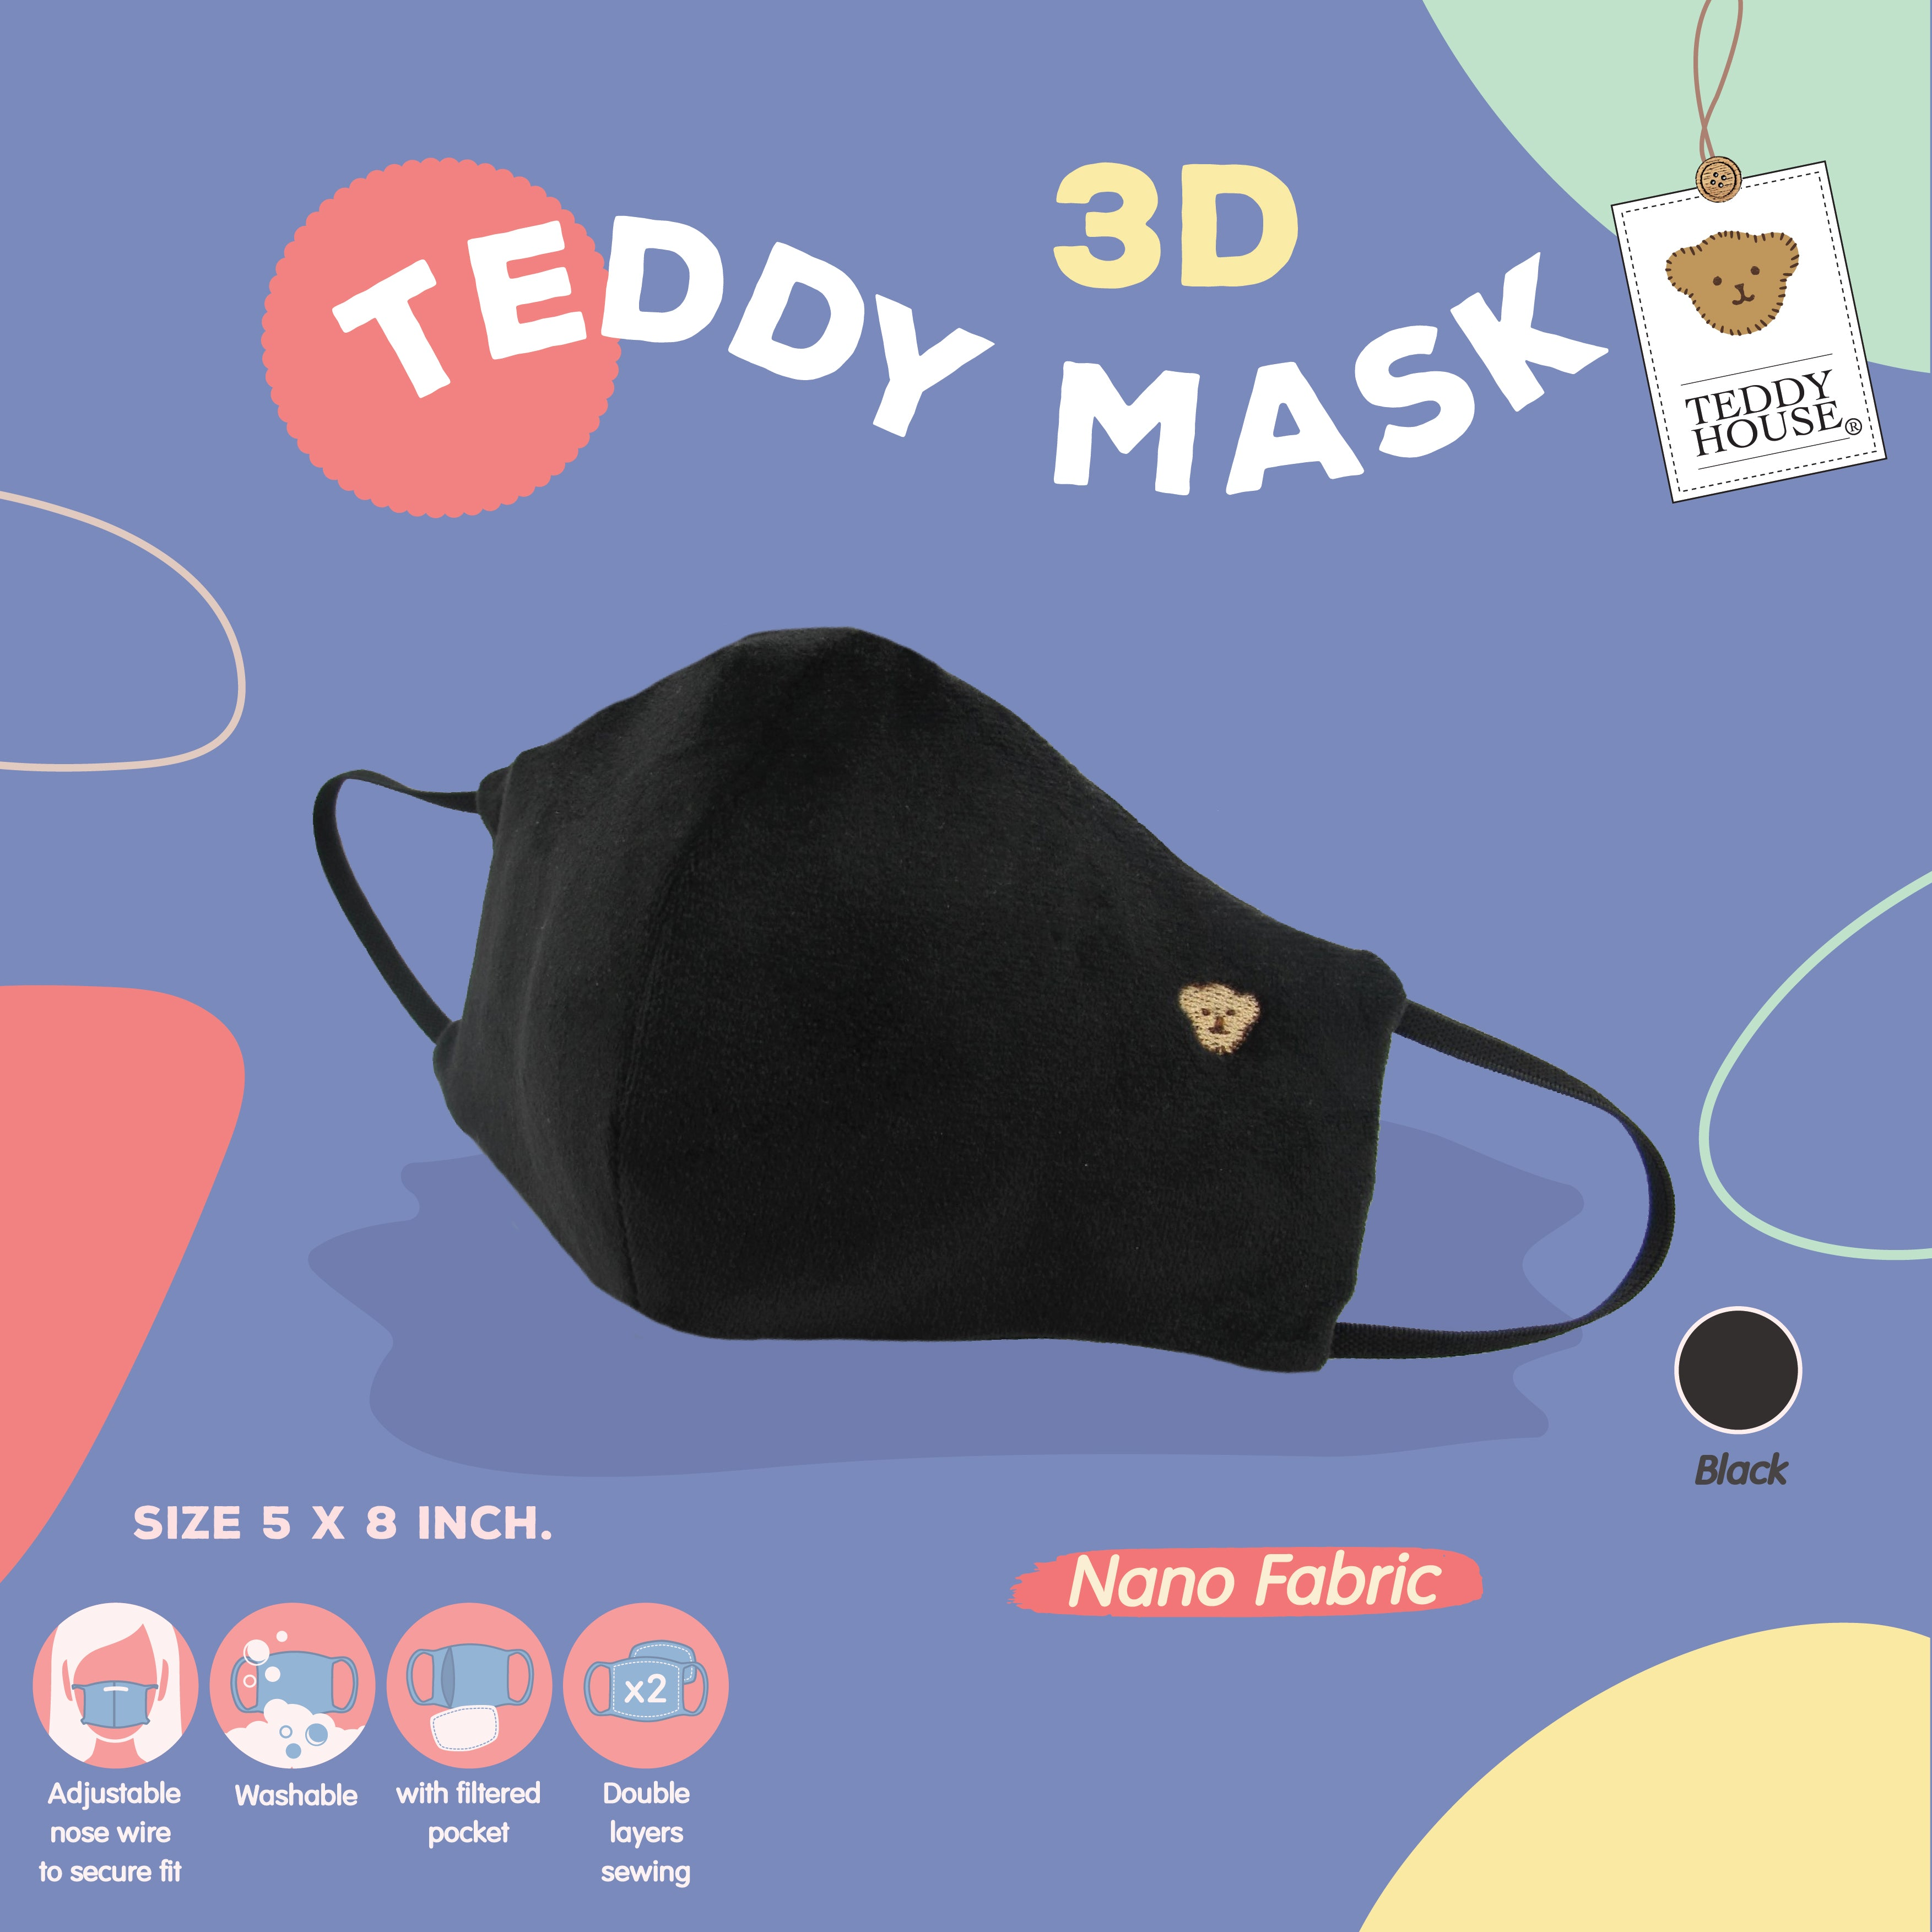 FABRIC MASK - 3D NANO FOR ADULT (BLACK, PINK, CREAM)